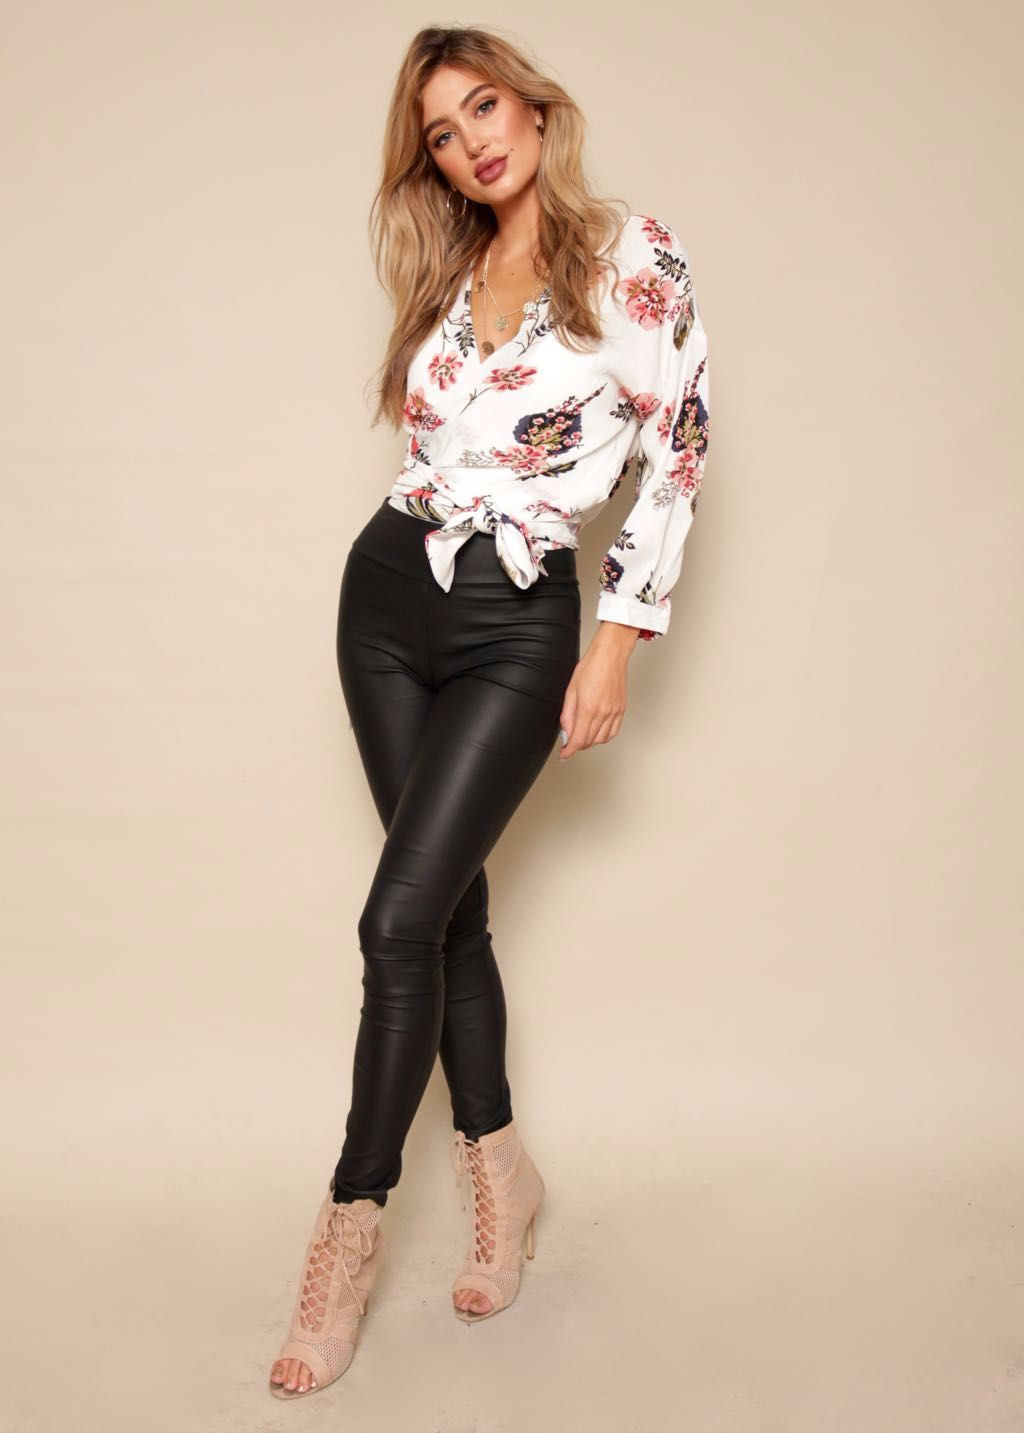 Tropical Heat Blouse - White Floral